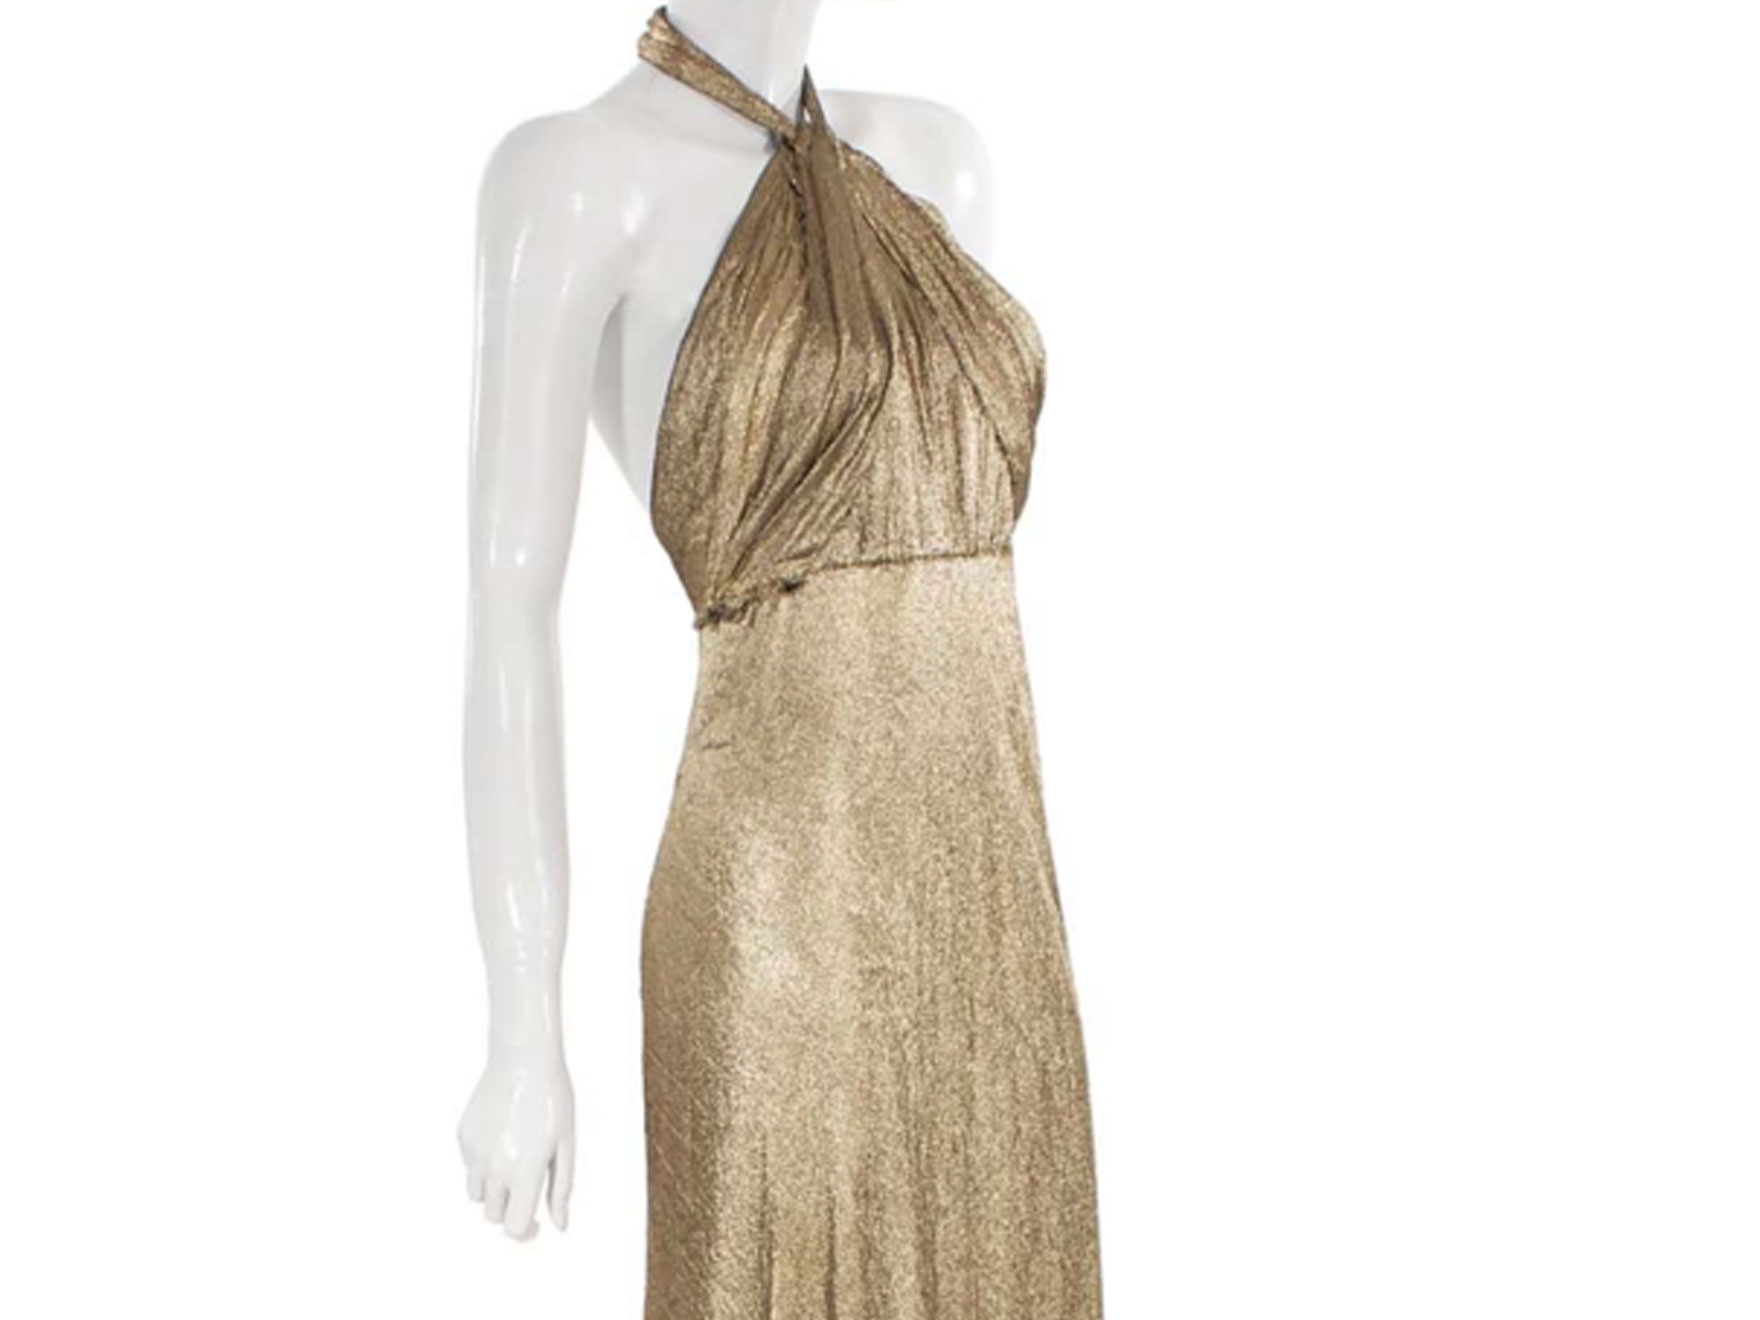 1937 gold lamé evening gown designed by Edith Head